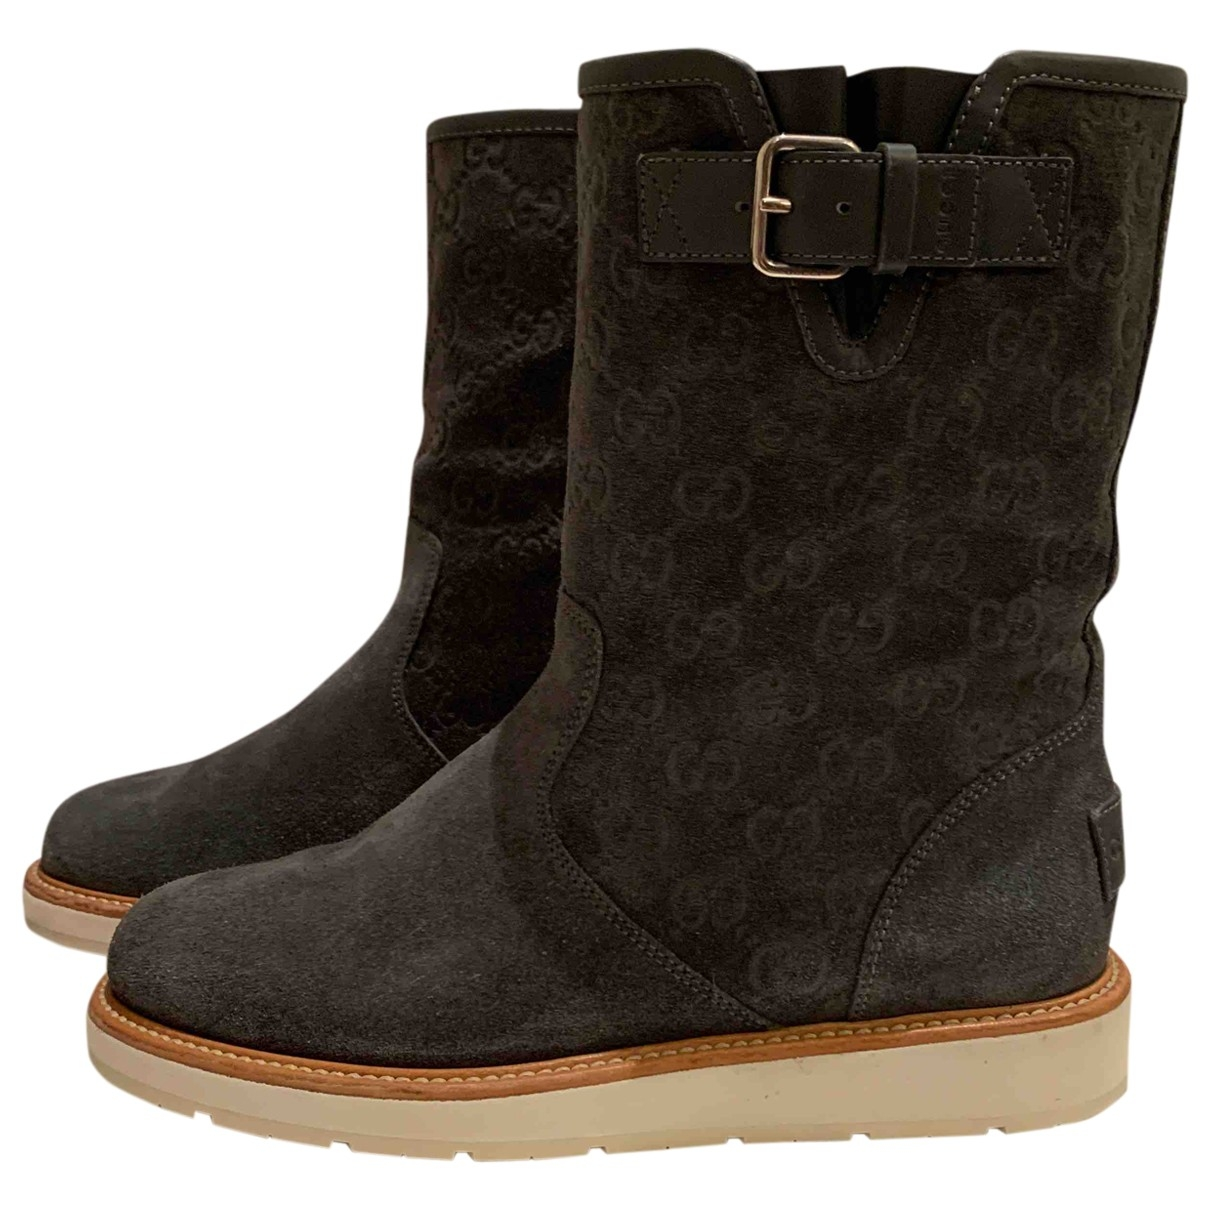 Gucci \N Grey Suede Boots for Women 37 EU